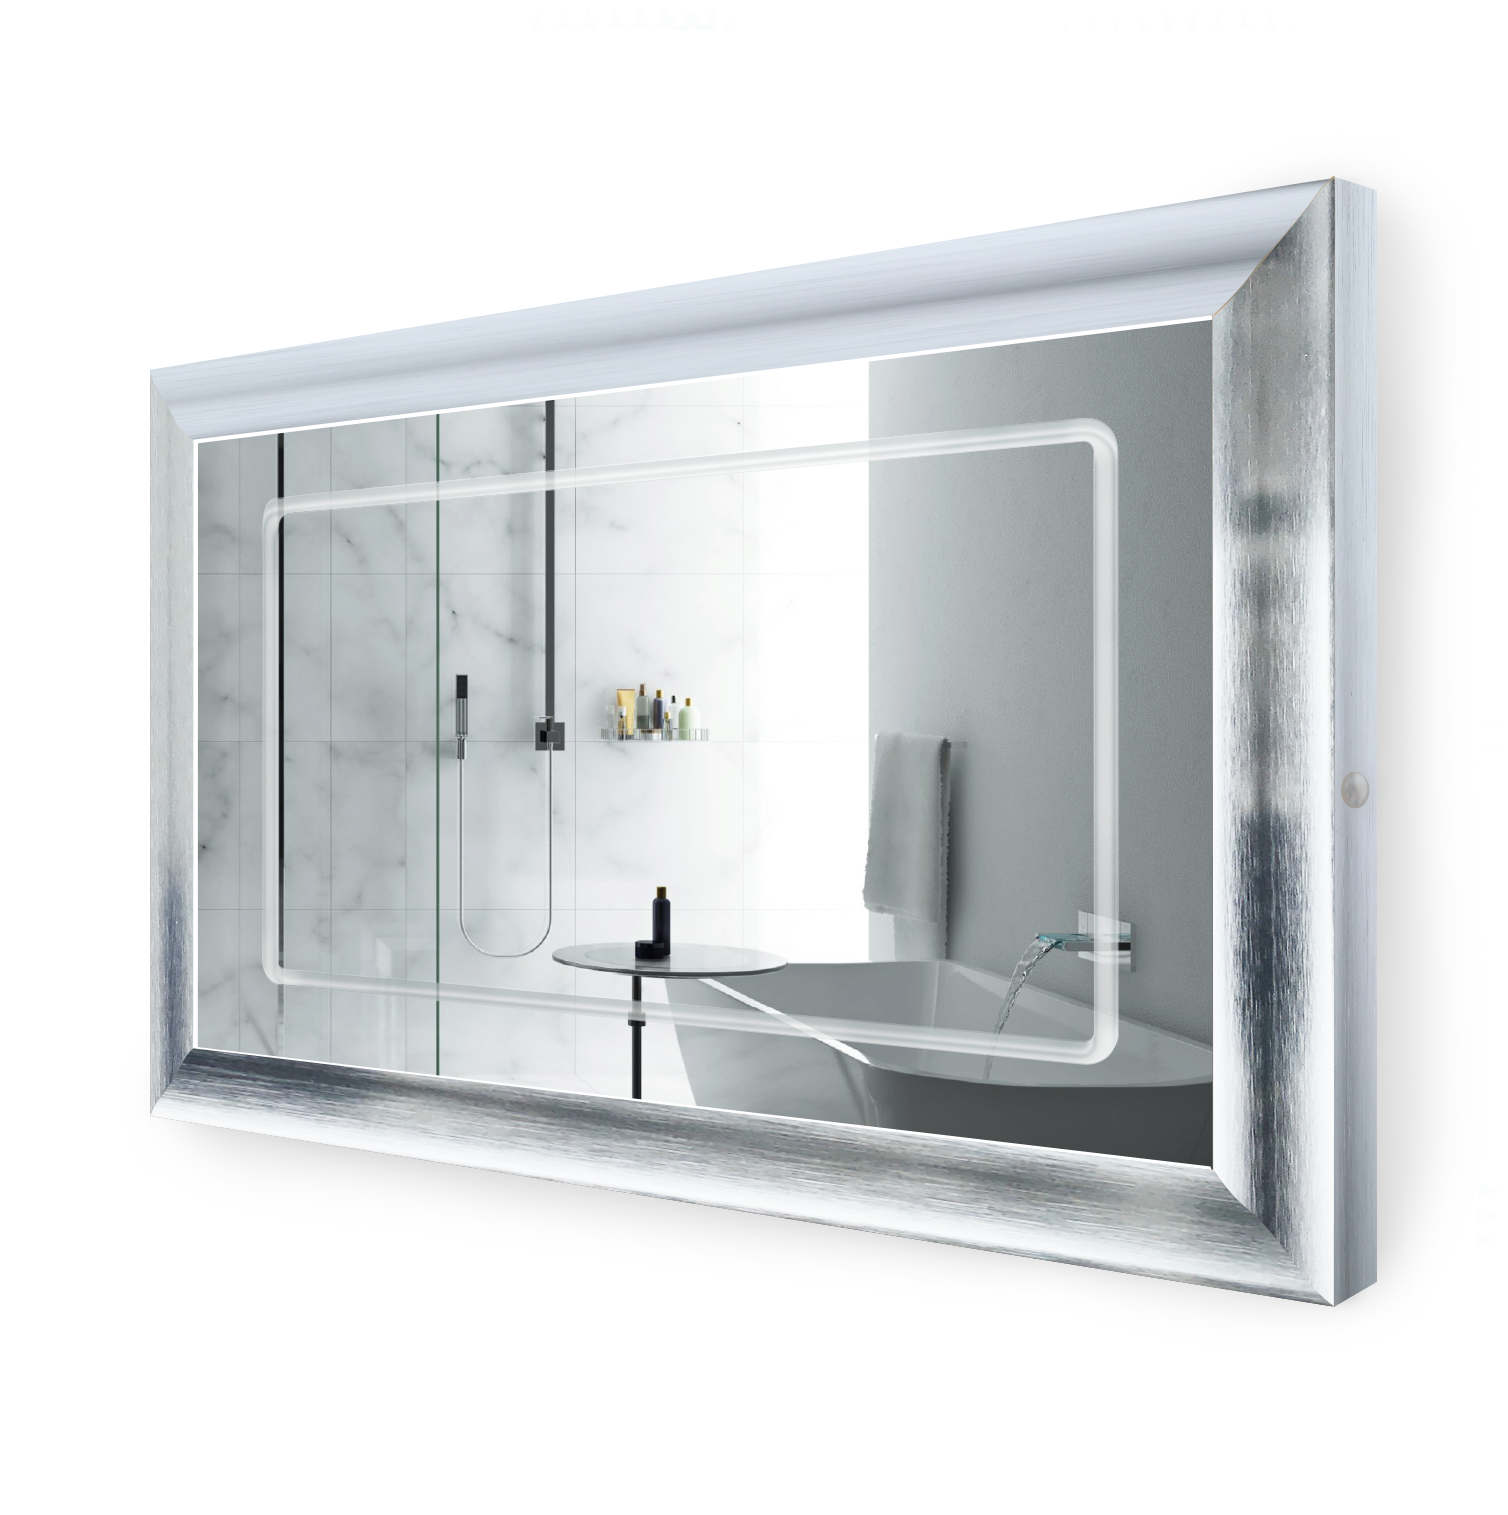 LED Lighted 48 Inch x 30 Inch Bathroom Silver Frame Mirror with Defogger